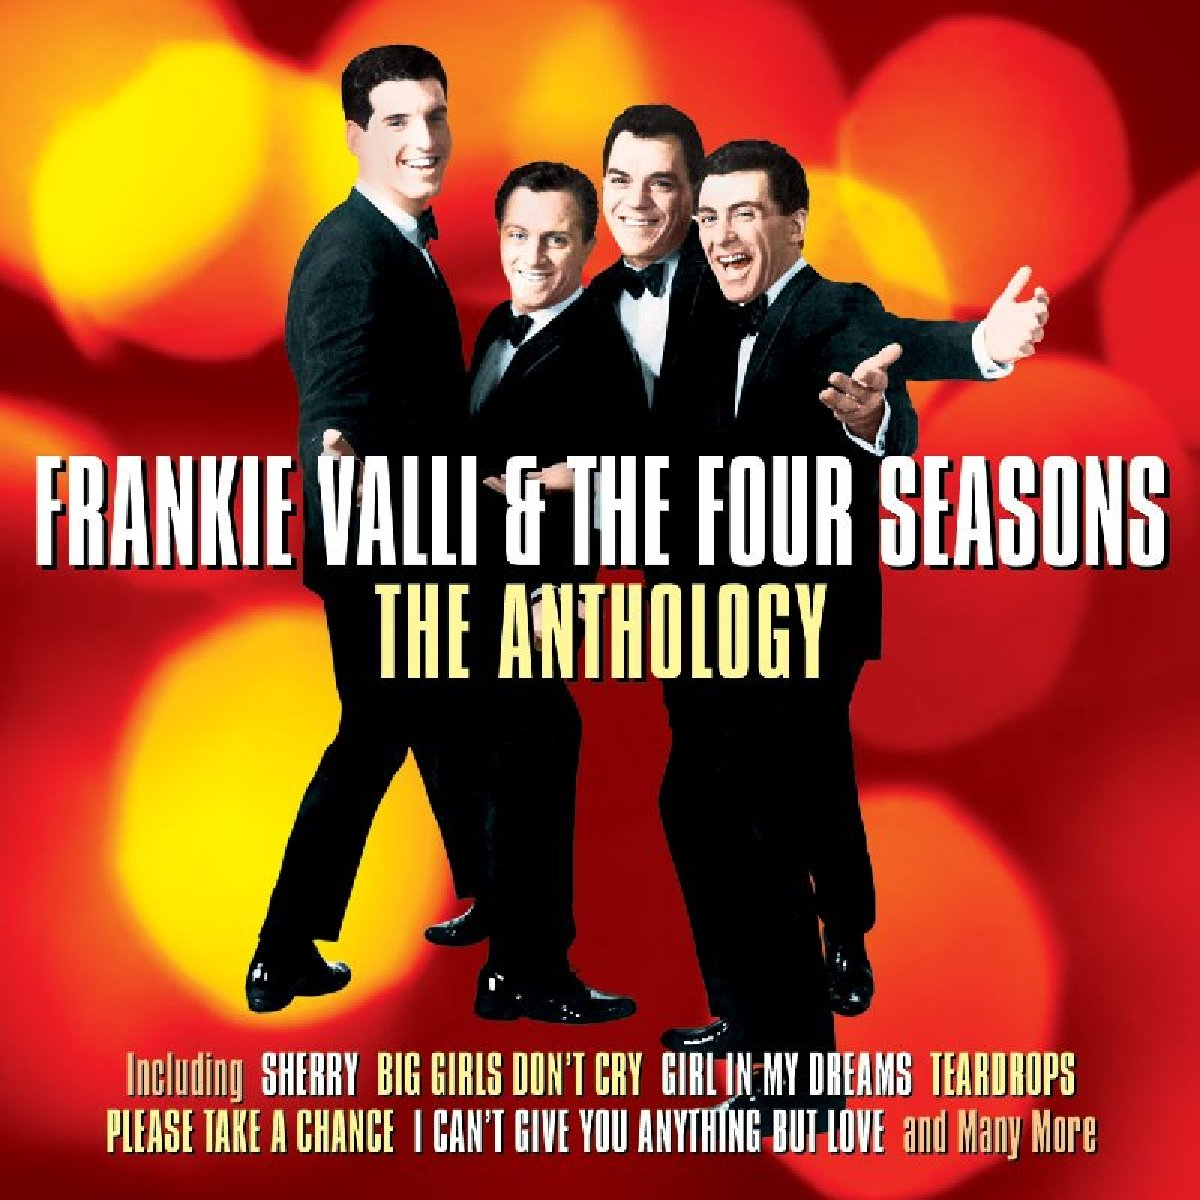 Frankie Valli And The Four Seasons On Cd Page 11 Steve